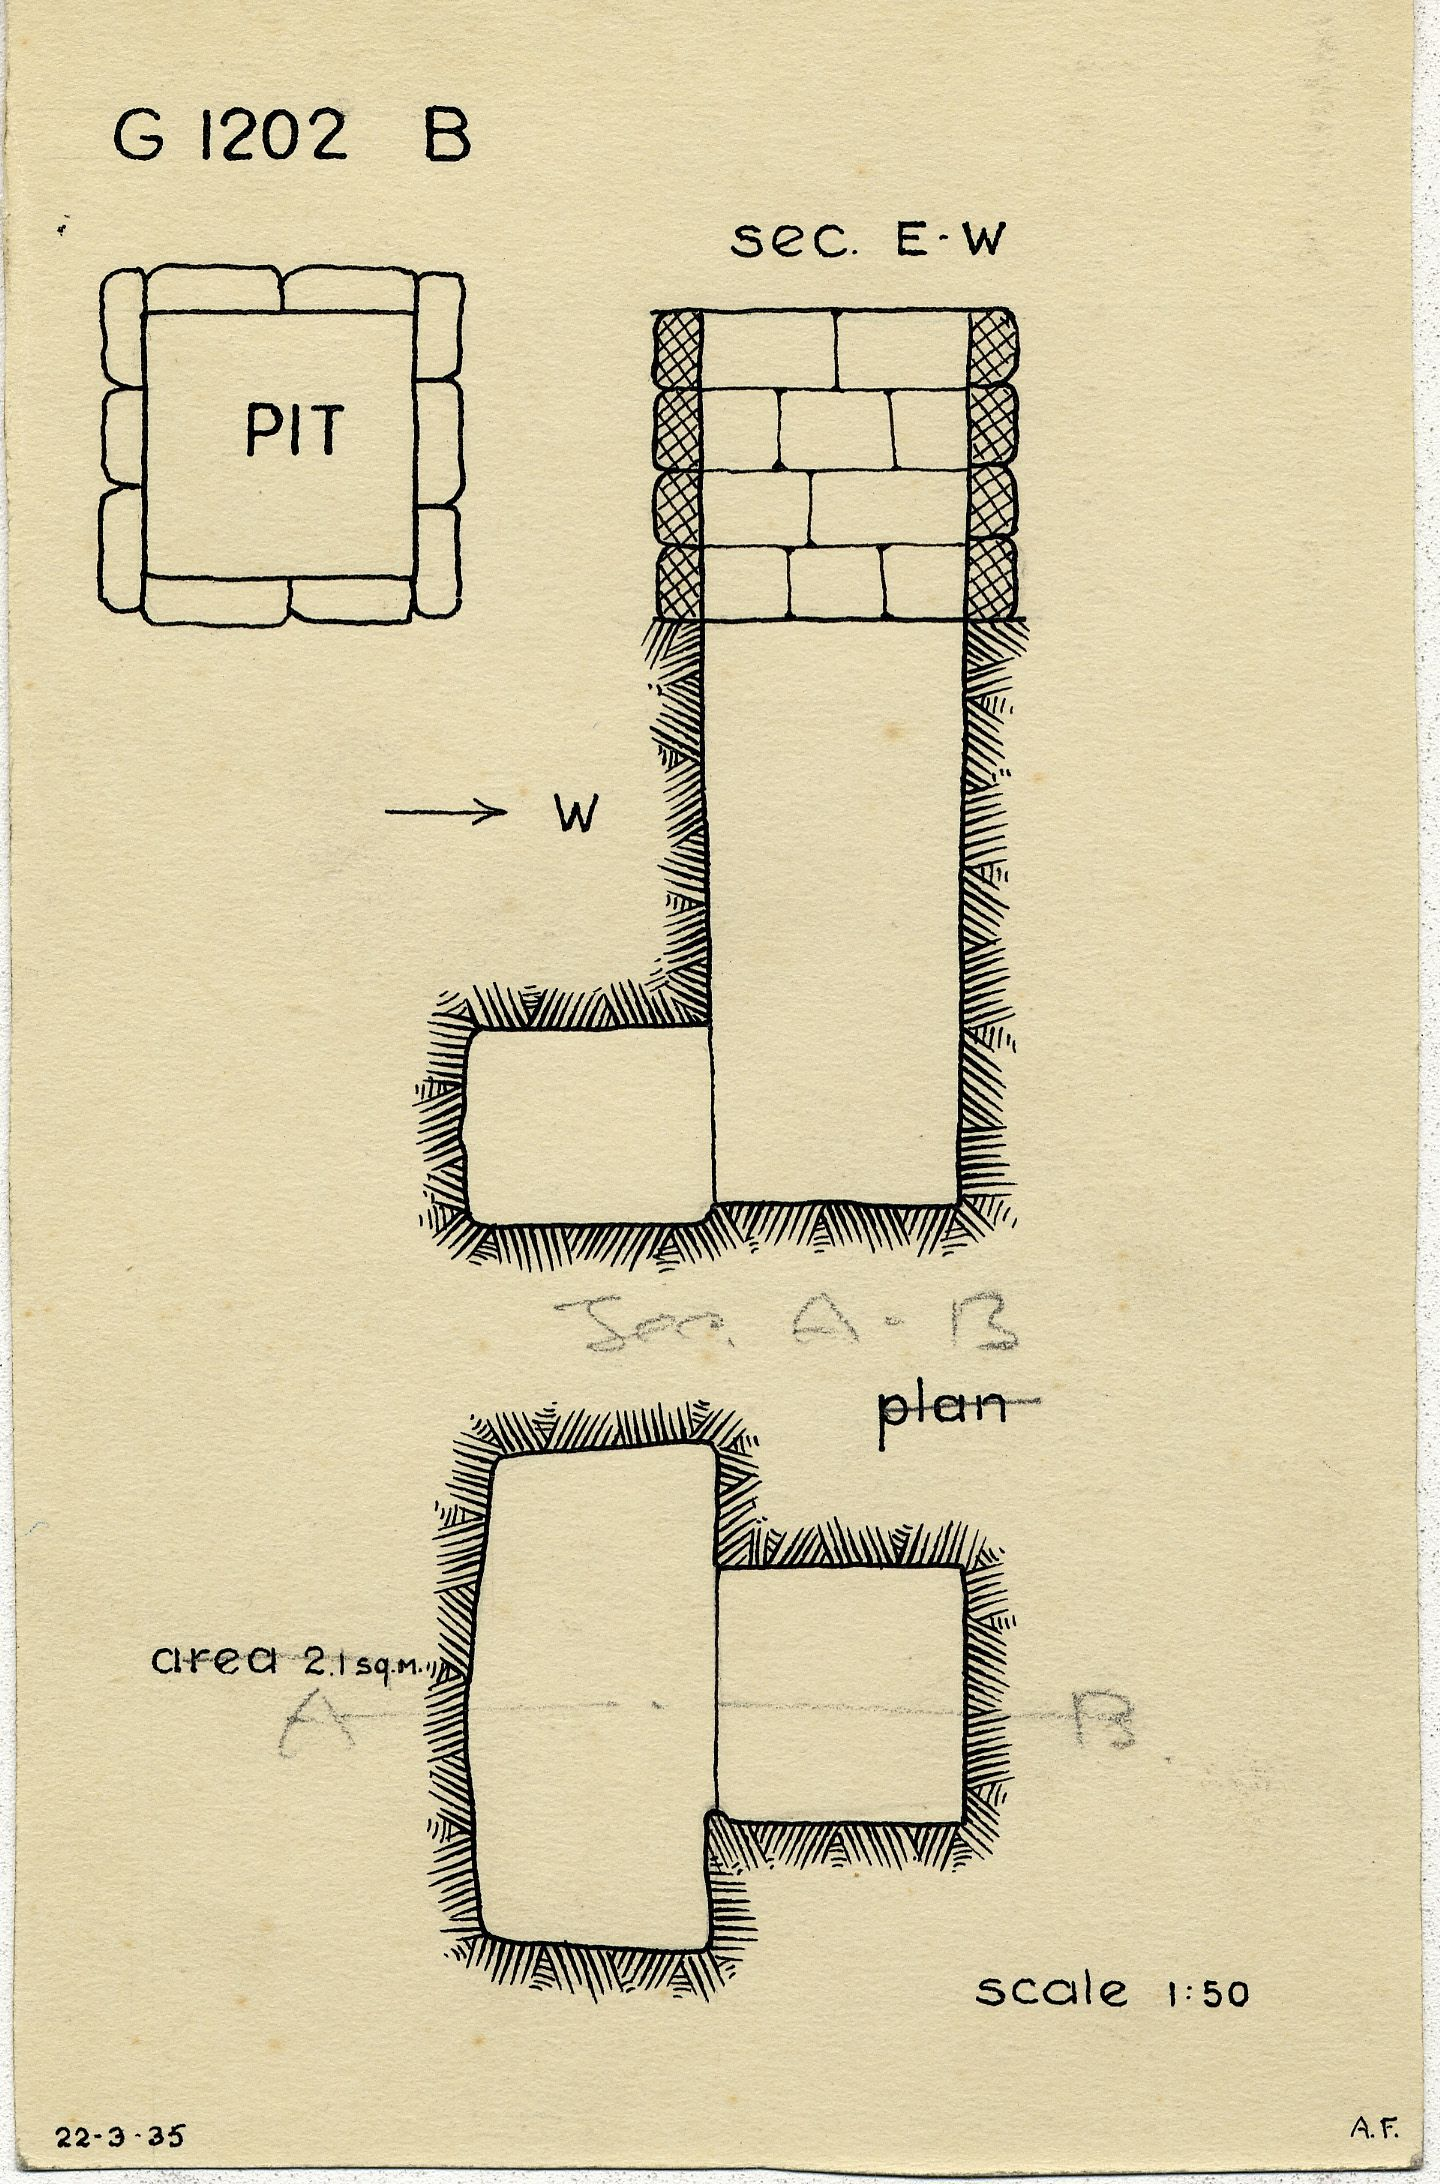 Maps and plans: G 1202, Shaft B